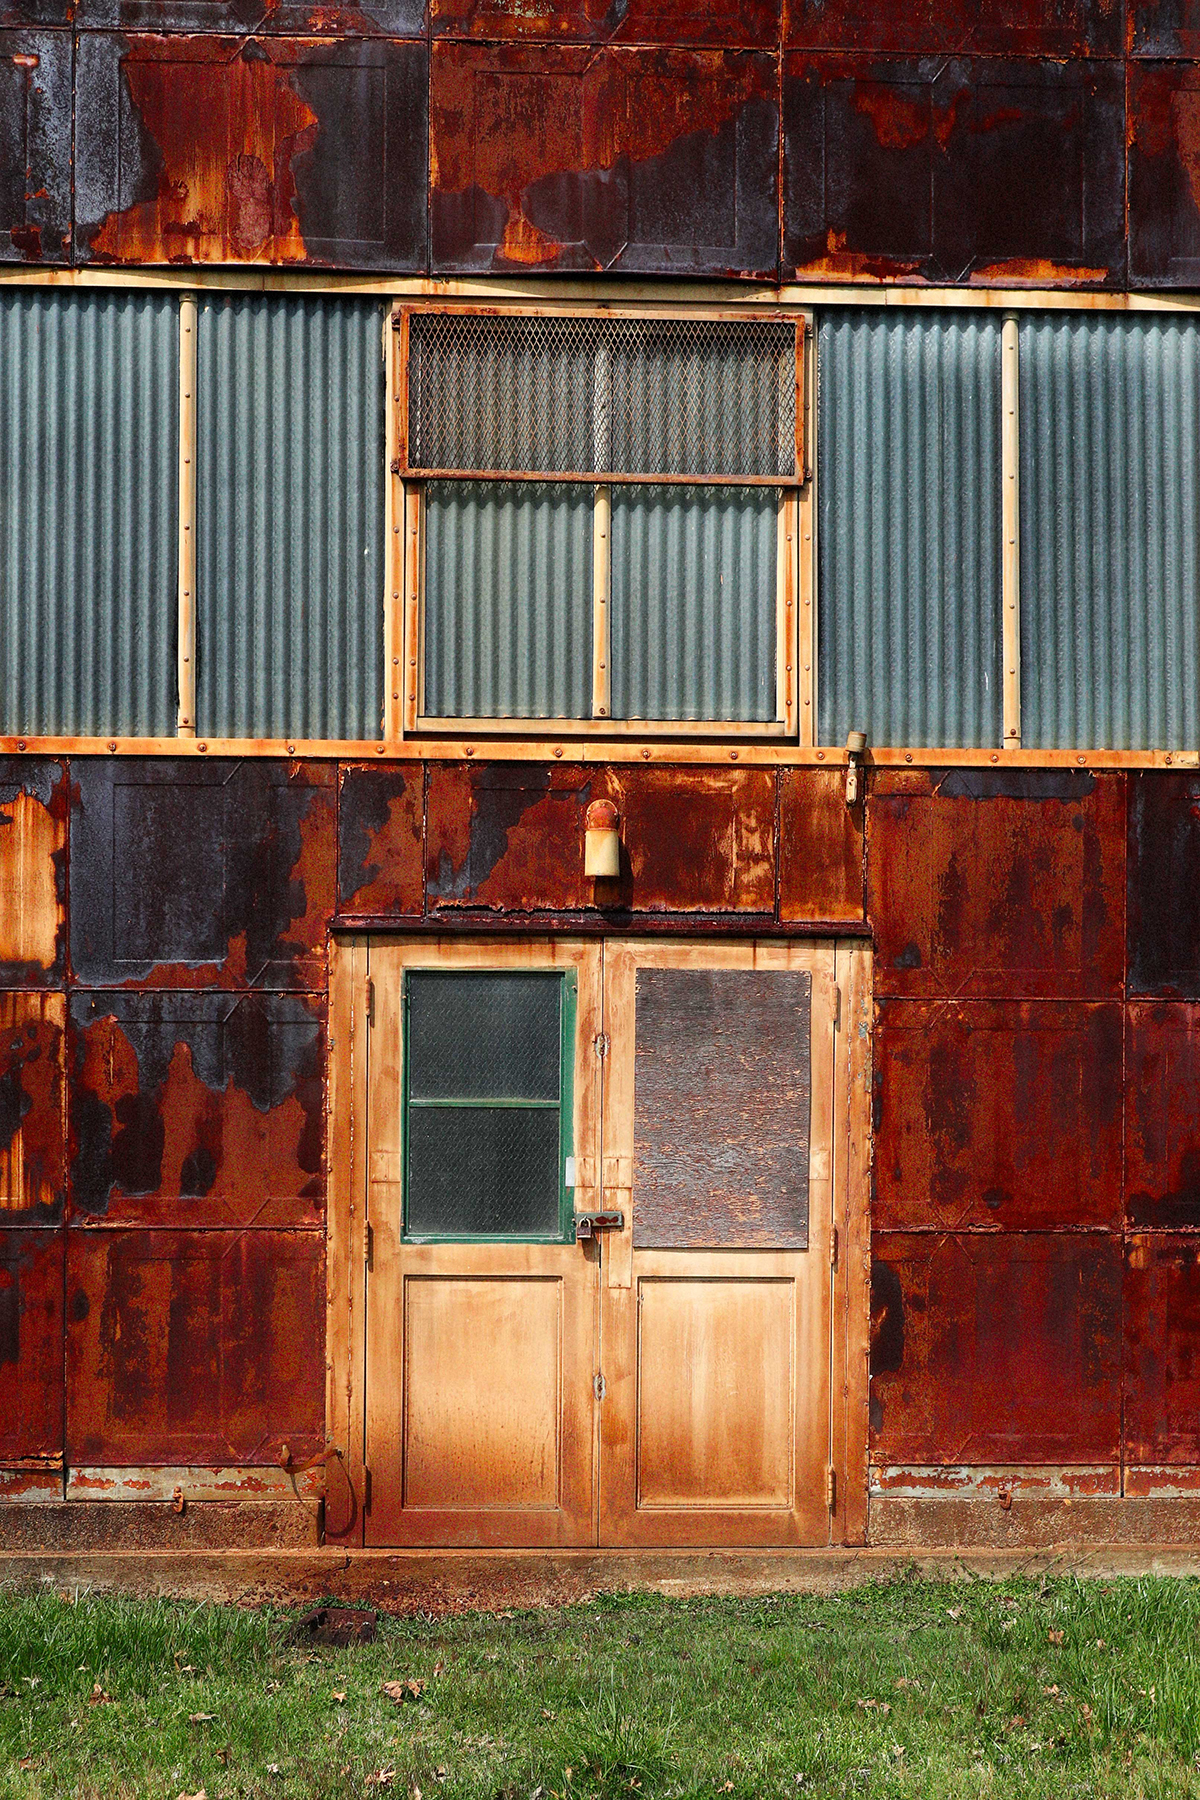 Navy_Yard_Rust_5